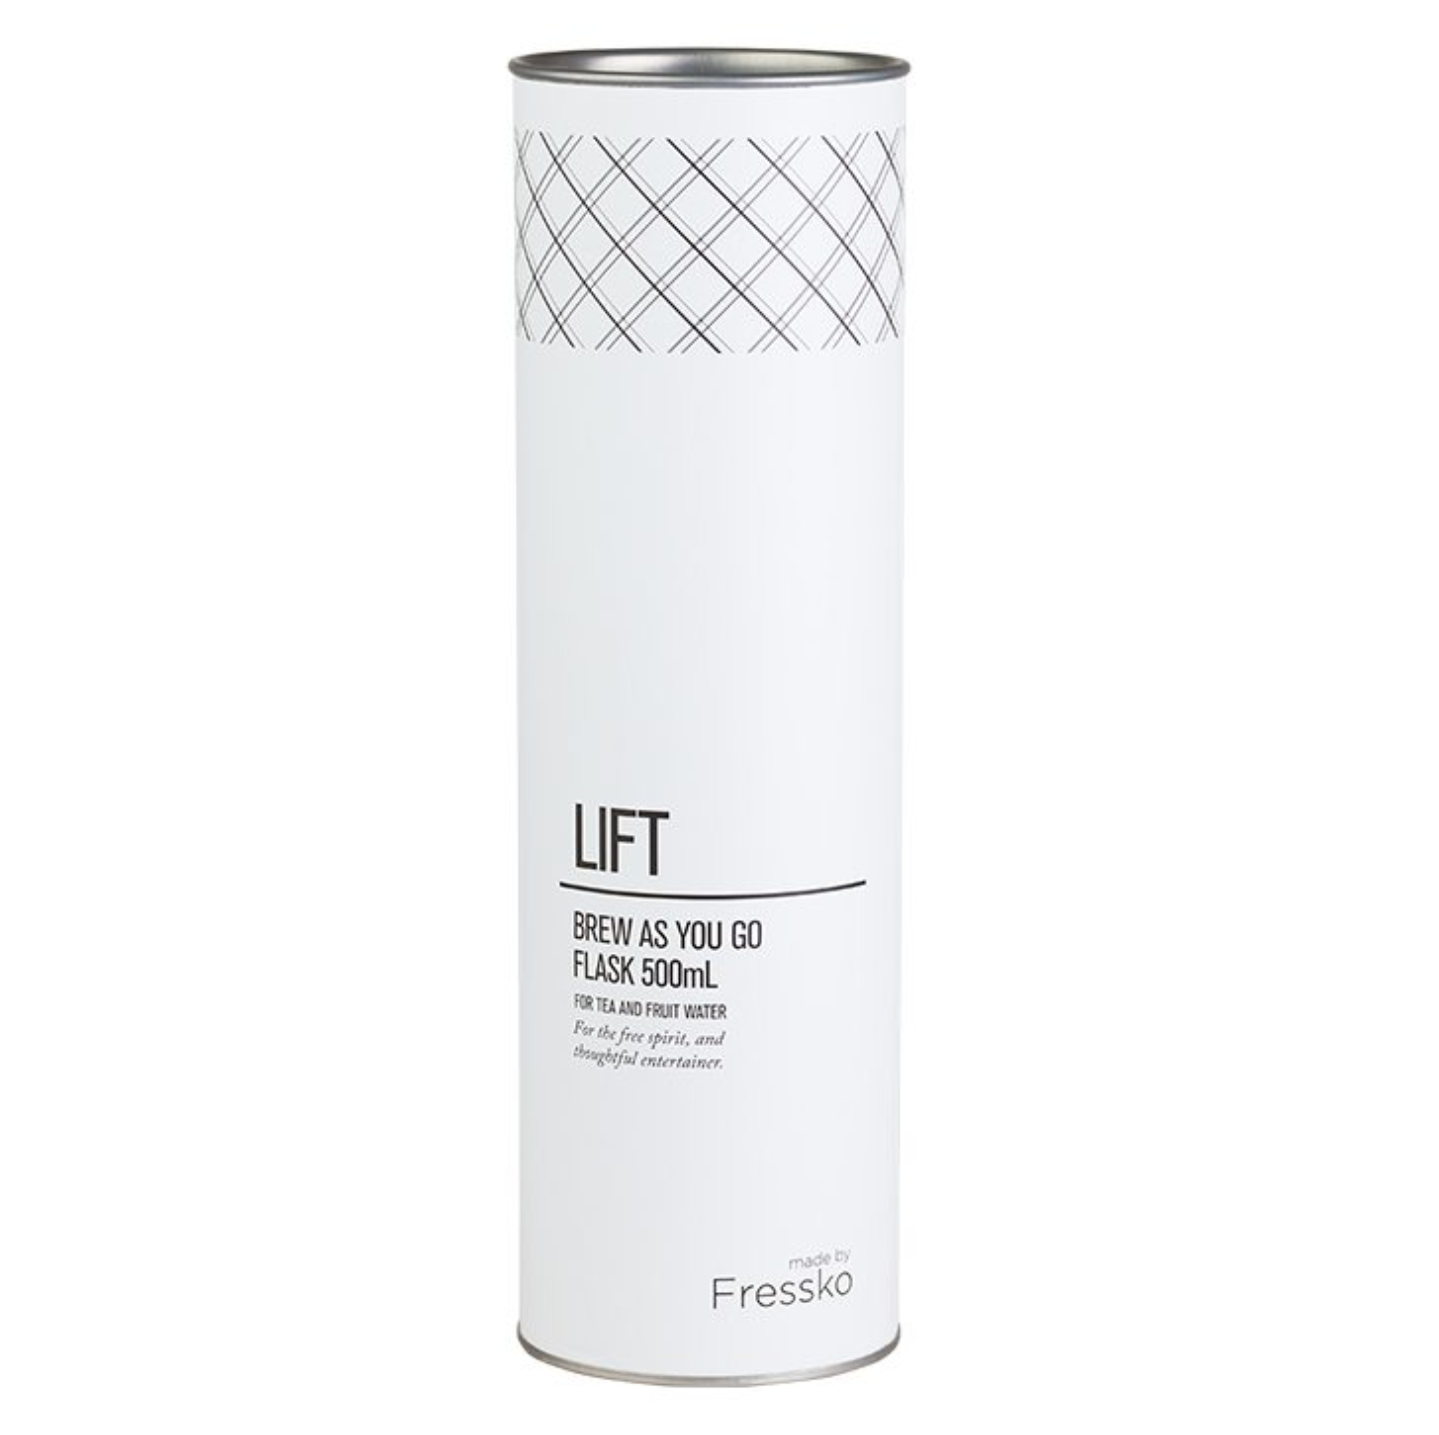 Fressko Flask LIFT 500ml